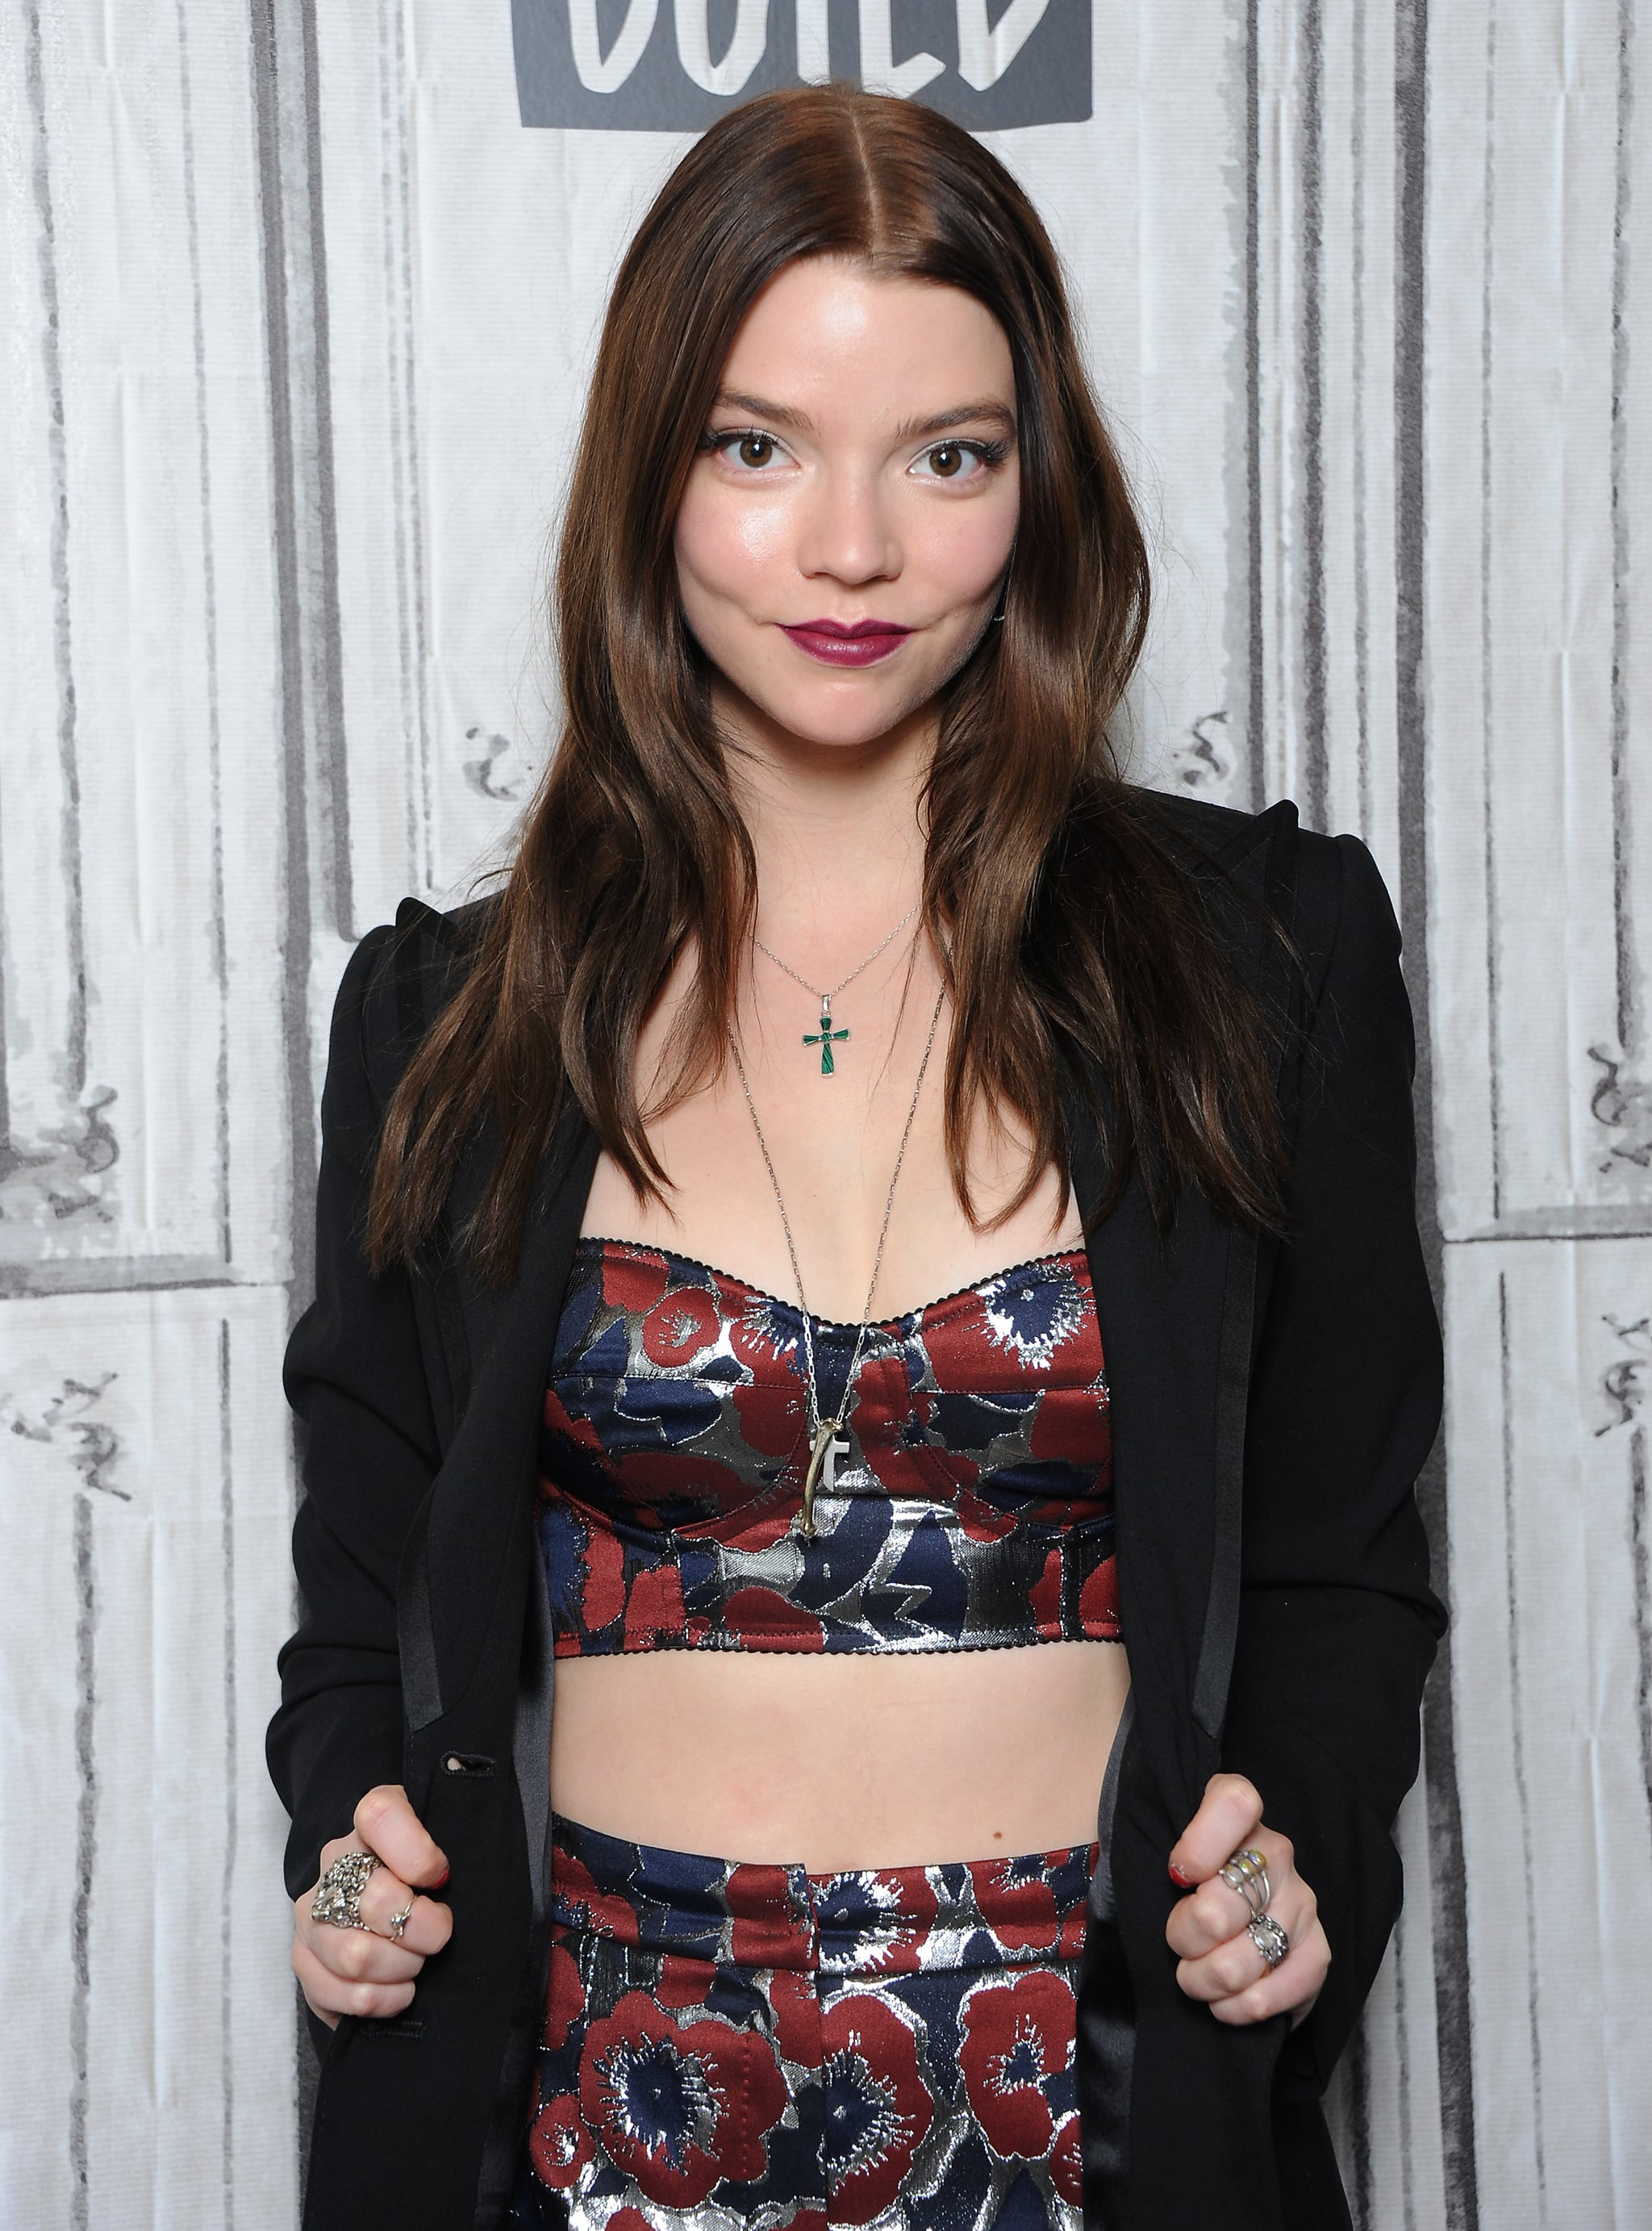 NEW YORK, NY - MARCH 07:  Actress Anya Taylor-Joy visits Build Series to discuss 'Thoroughbreds' at Build Studio on March 7, 2018 in New York City.  (Photo by Desiree Navarro/WireImage)